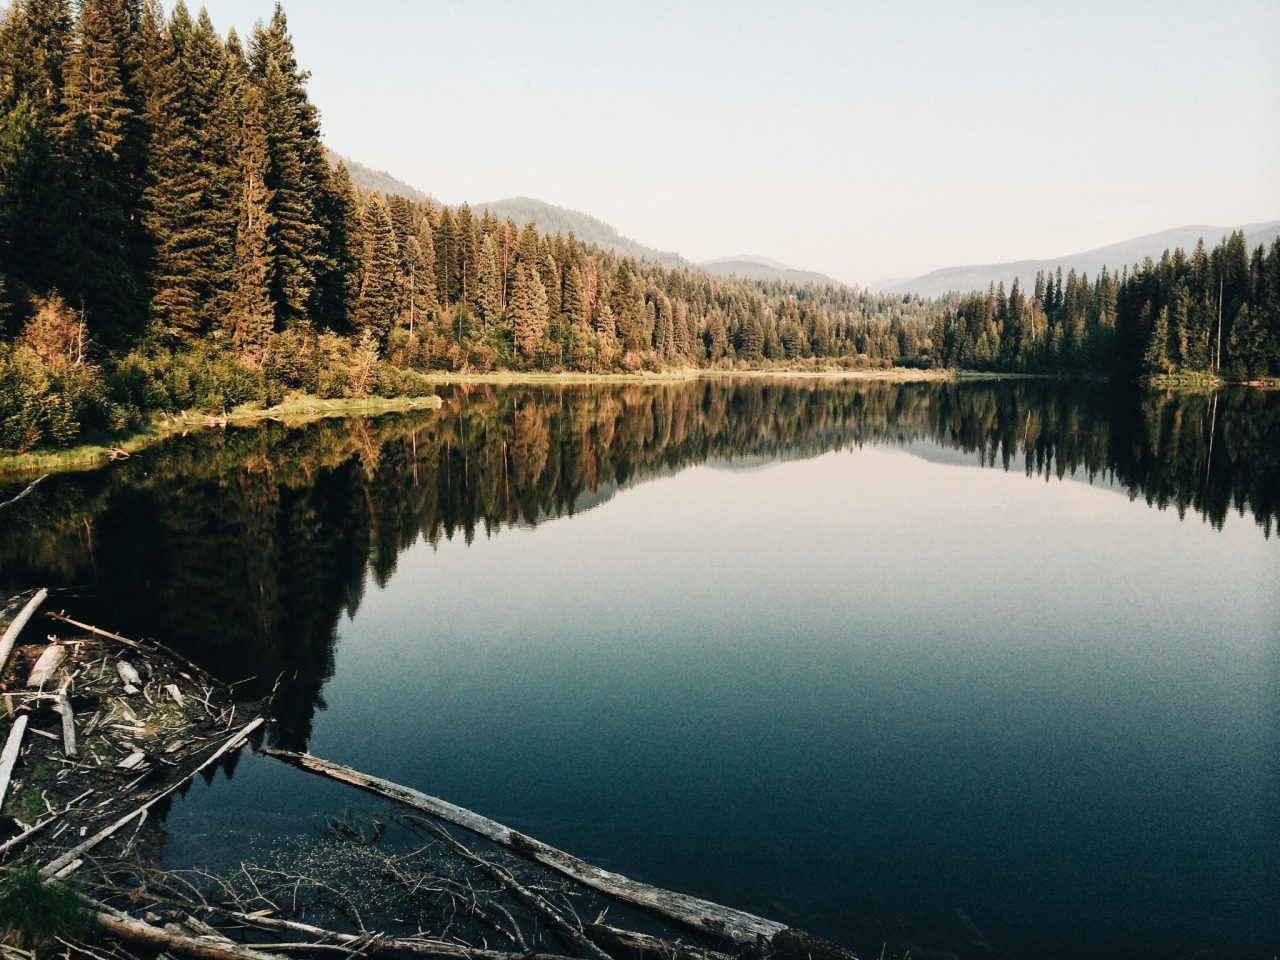 beautiful, indie, lake, landscape, mountains, nature, photo, photography, place, reflection, trees, water